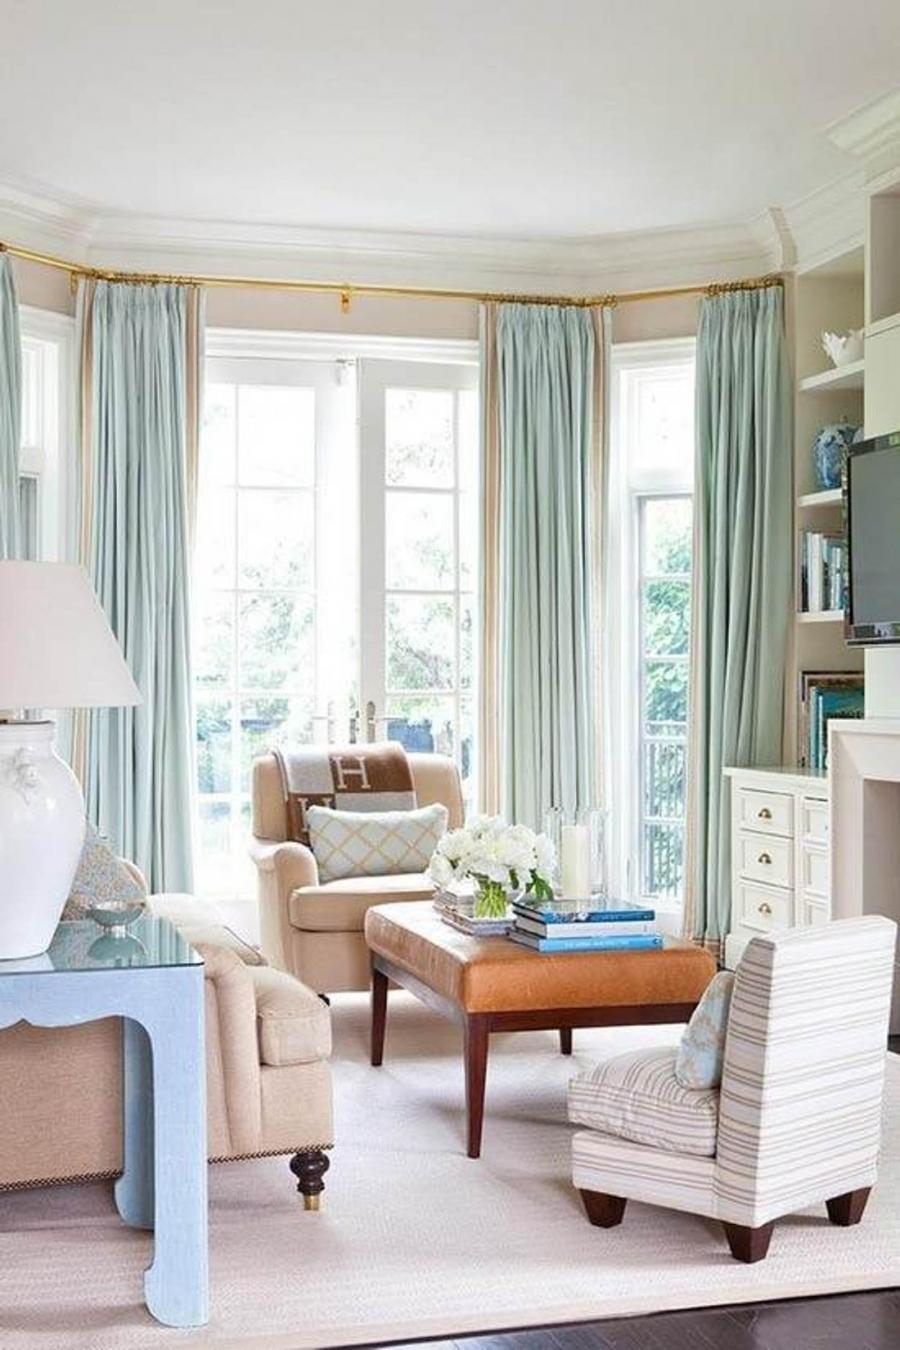 Better homes and gardens interior decorating windows